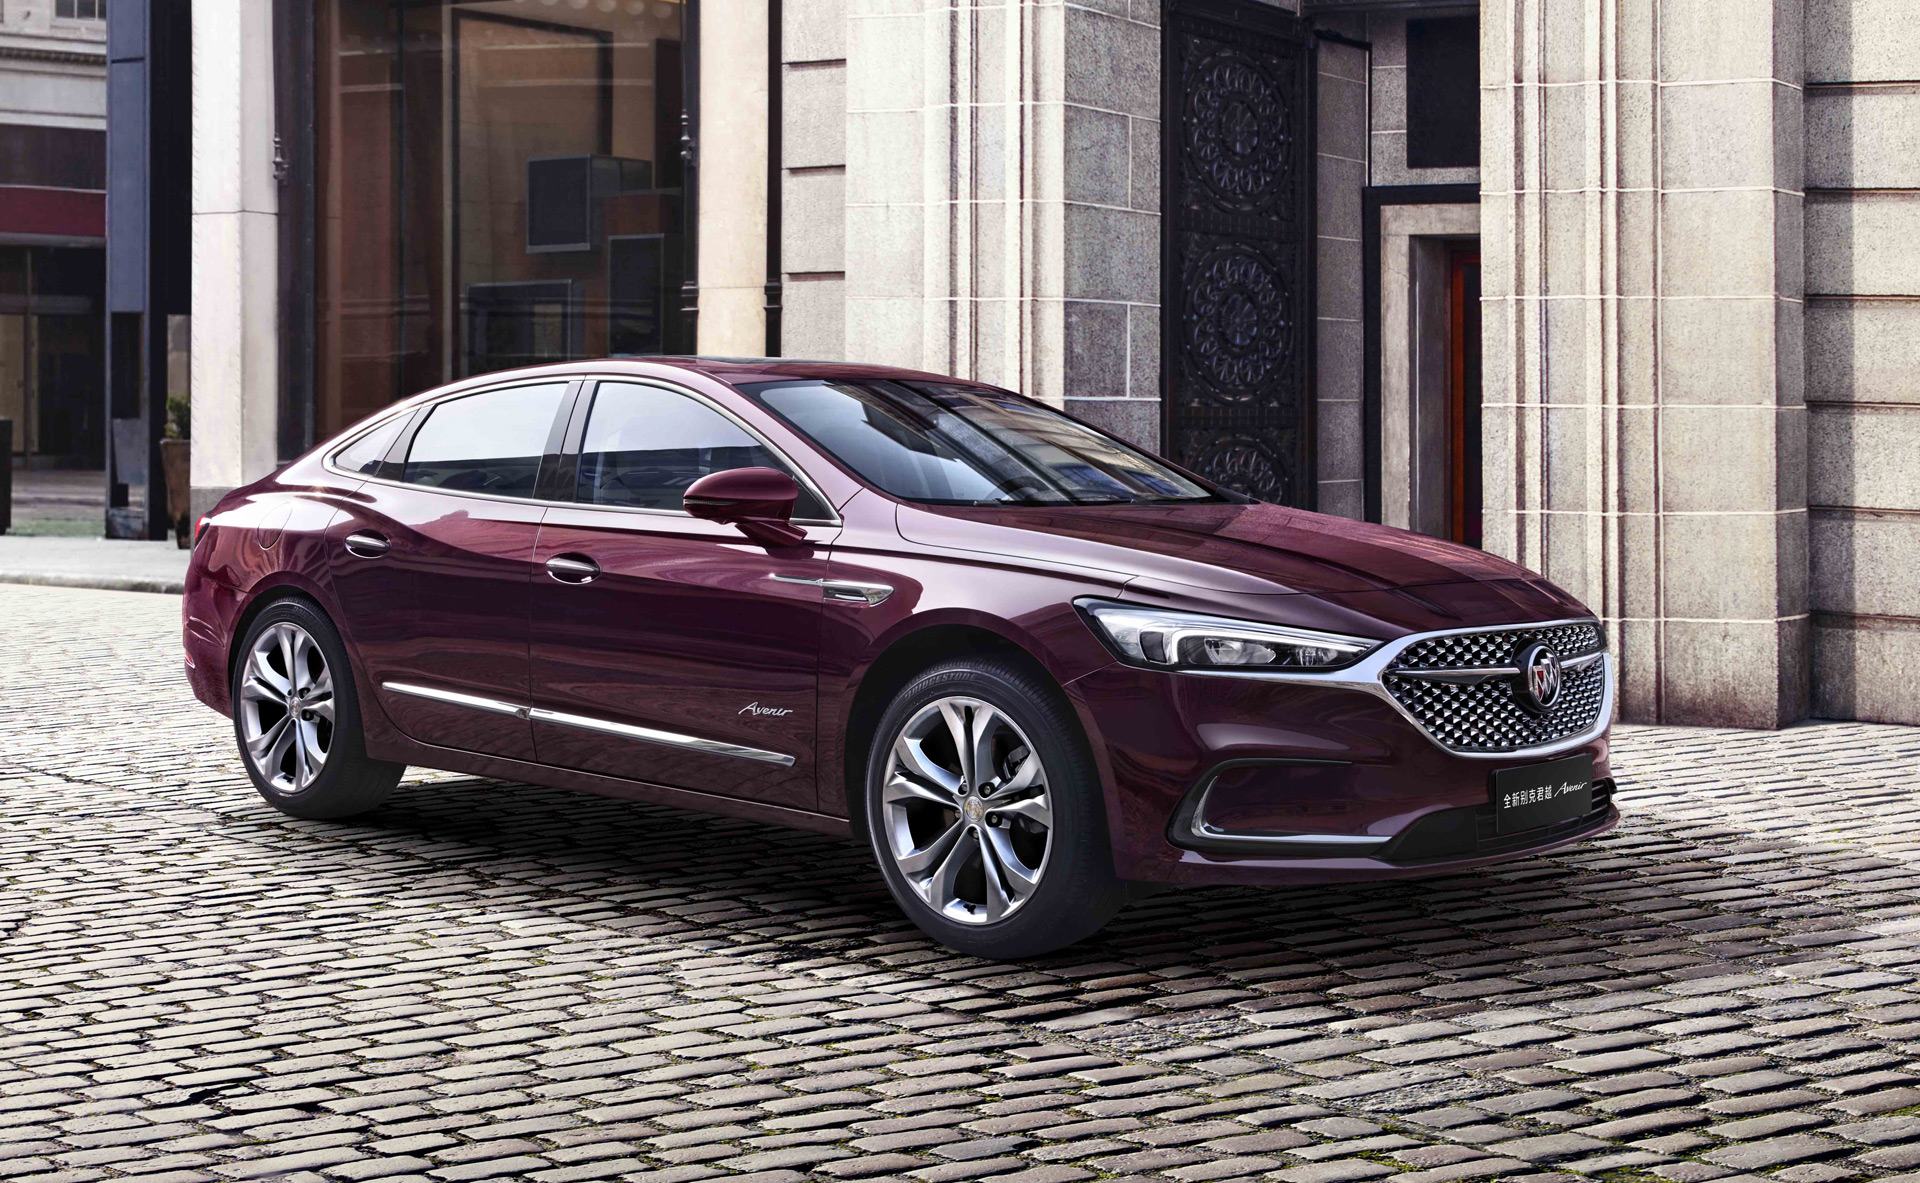 2020 Buick Lacrosse Made Handsome Just As It's Dropped In Us What Will The 2022 Buick Lacrosse Look Like